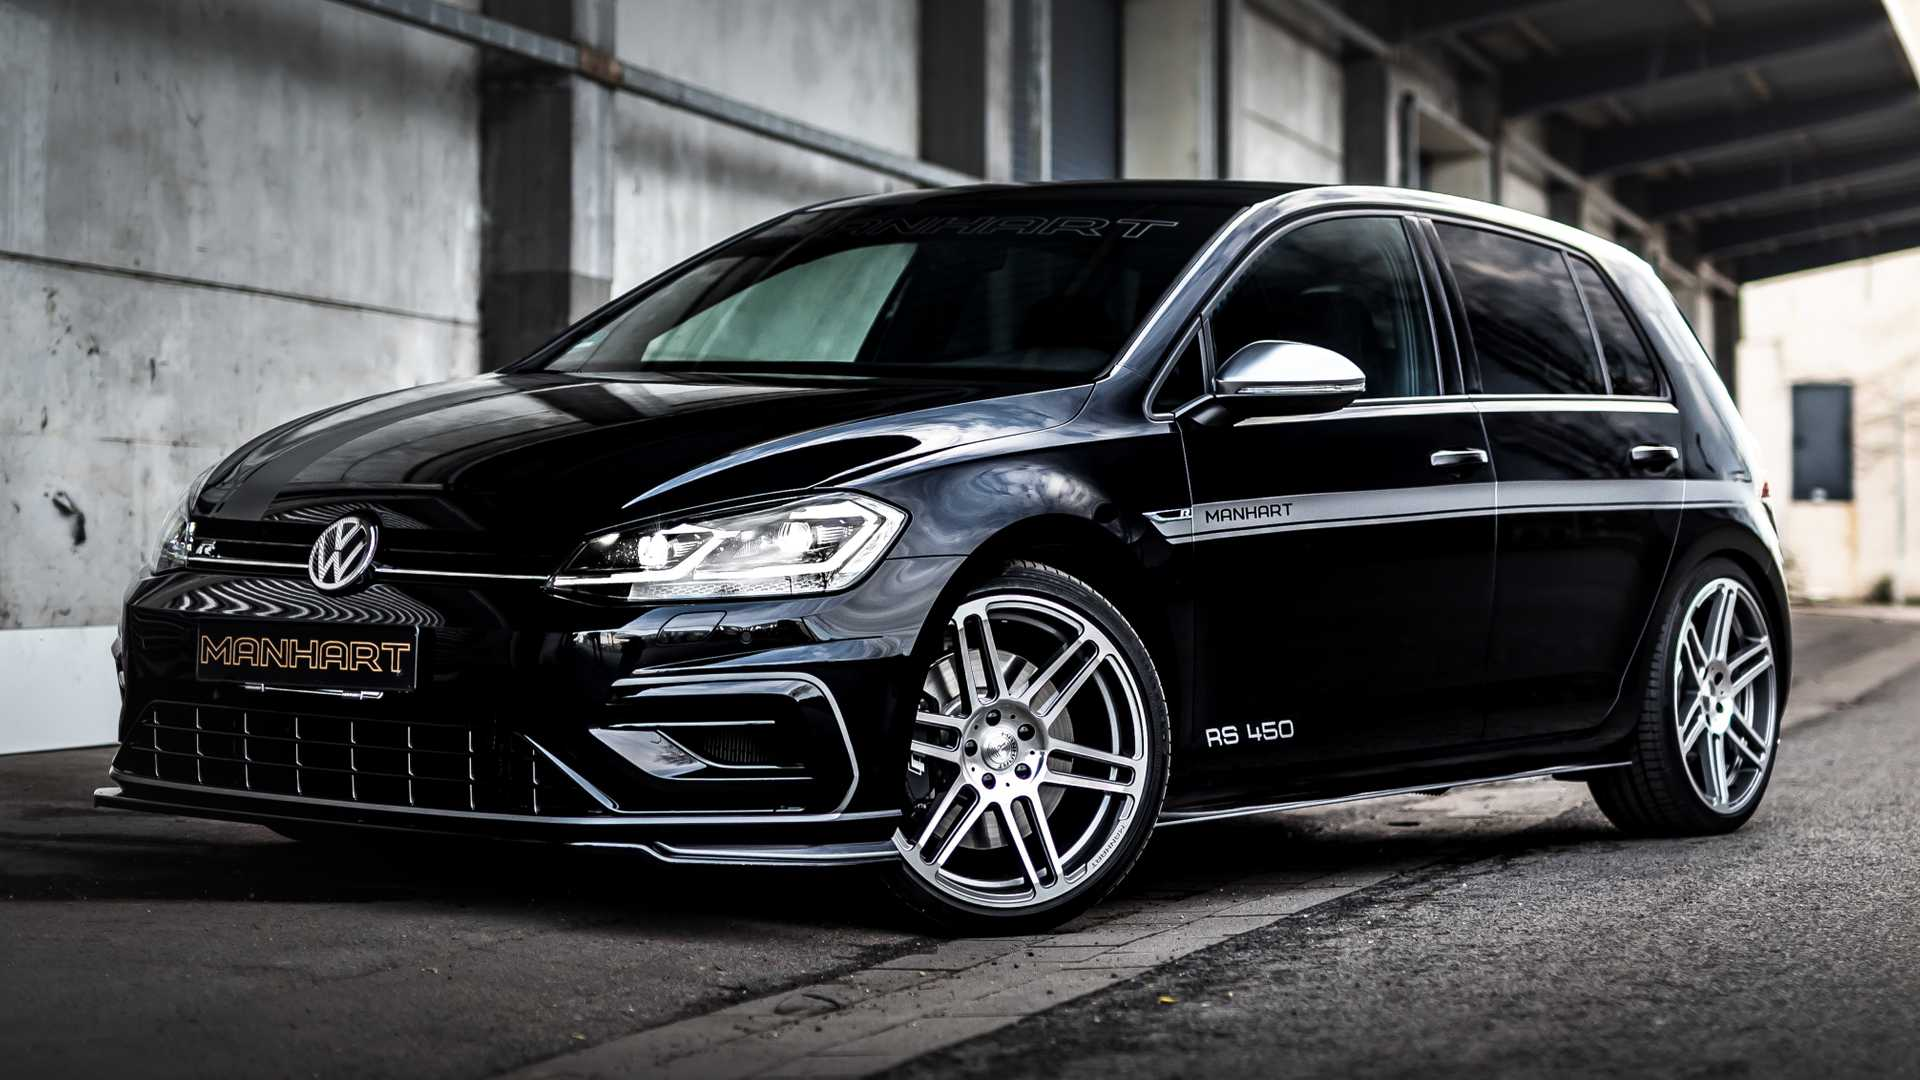 Vw Golf R By Manhart Is A Stealthy Hot Hatch With 450 Horsepower